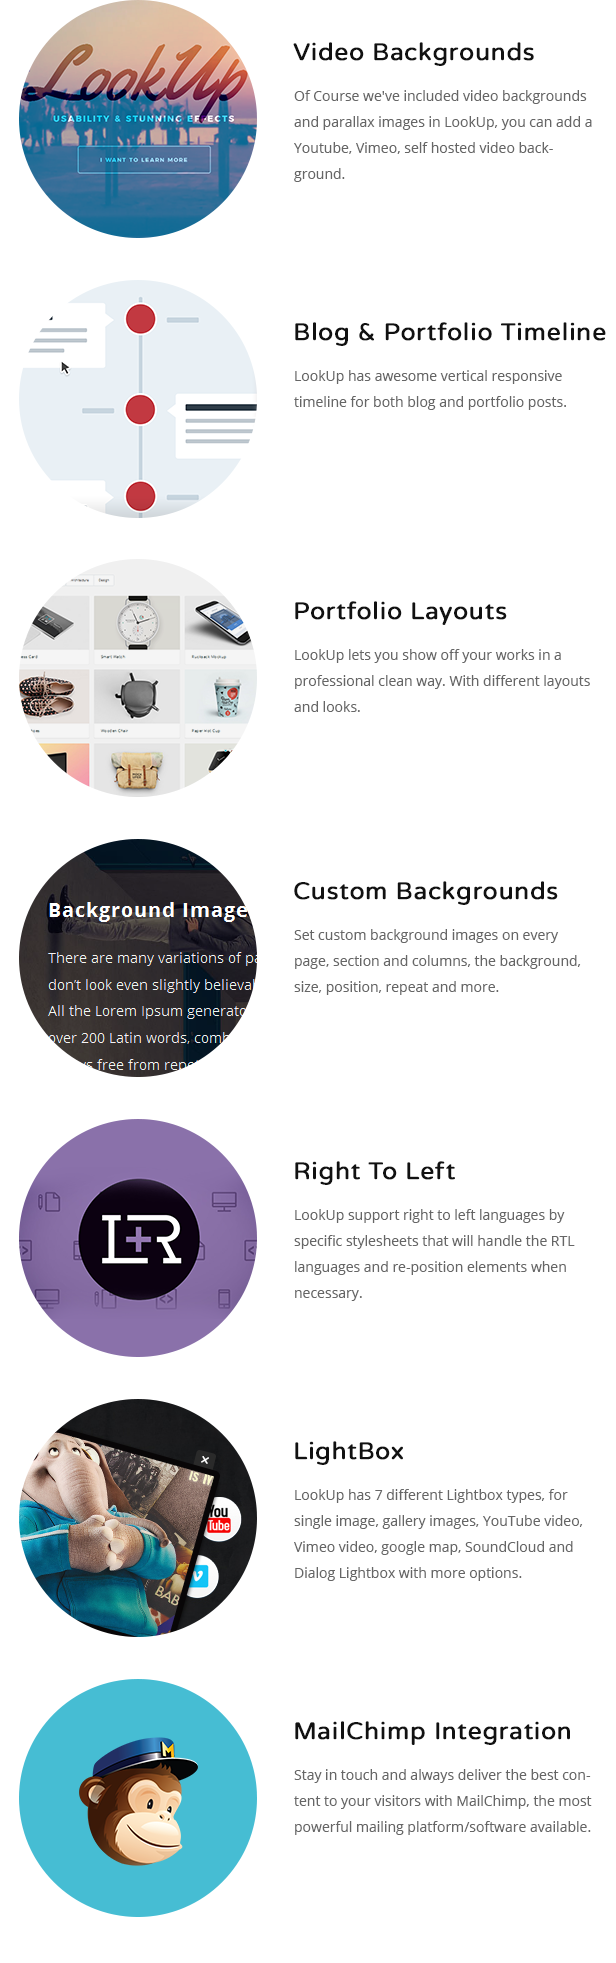 Background image 100 responsive - Lookup Responsive Multi Purpose Responsive Html5 Css3 Template For Desktop Tablet Mobile Phone 100 Responsive Multi Purpose And Multi Pages